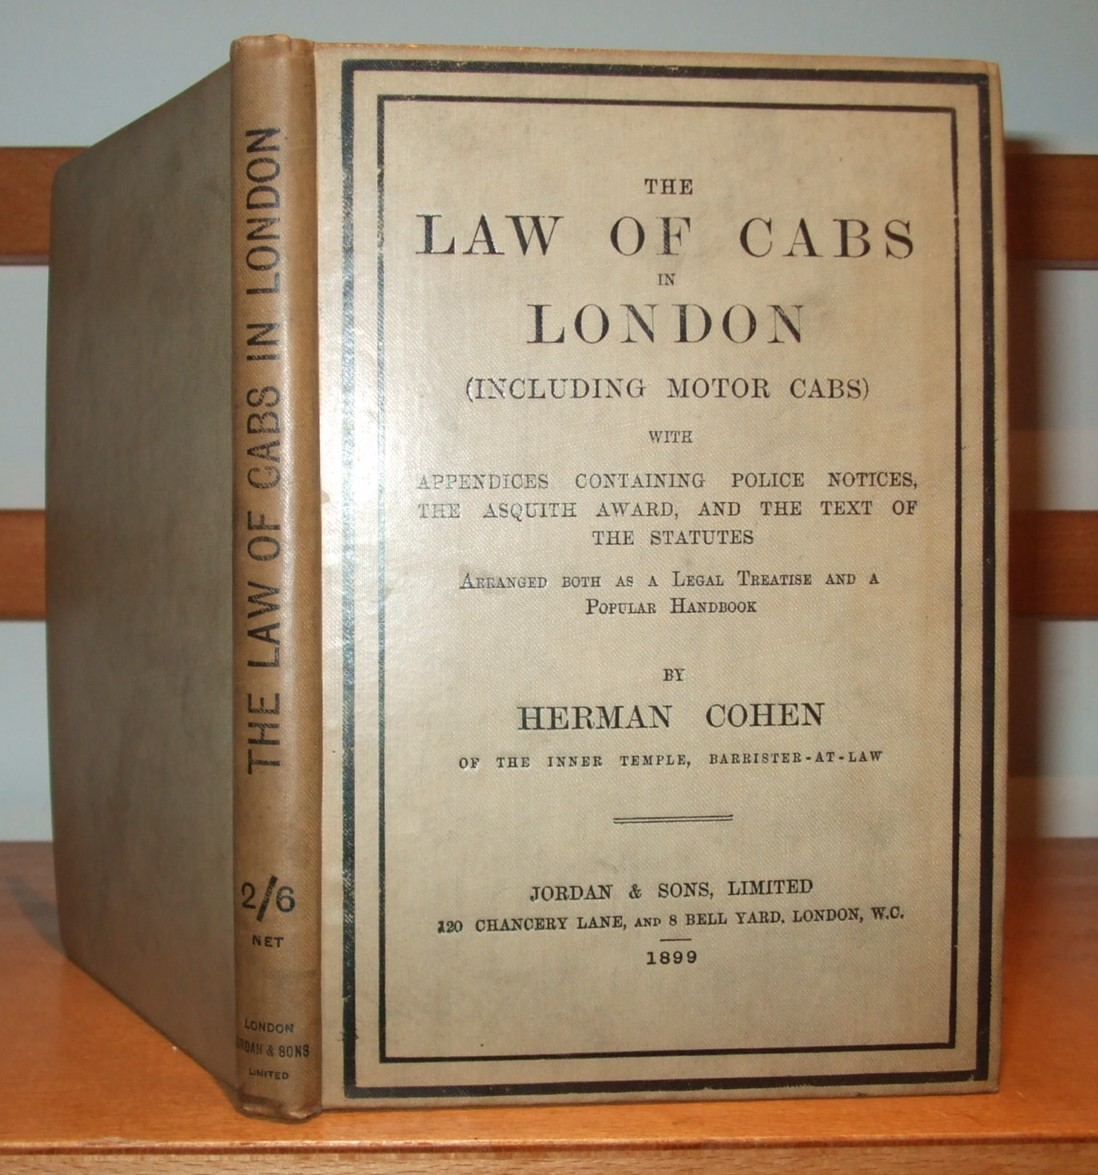 Image for The law of cabs in London : including motor cabs : with appendices containing police notices, the Asquith award, and the text of the statutes arranged both as a legal treatise and a popular Handbook